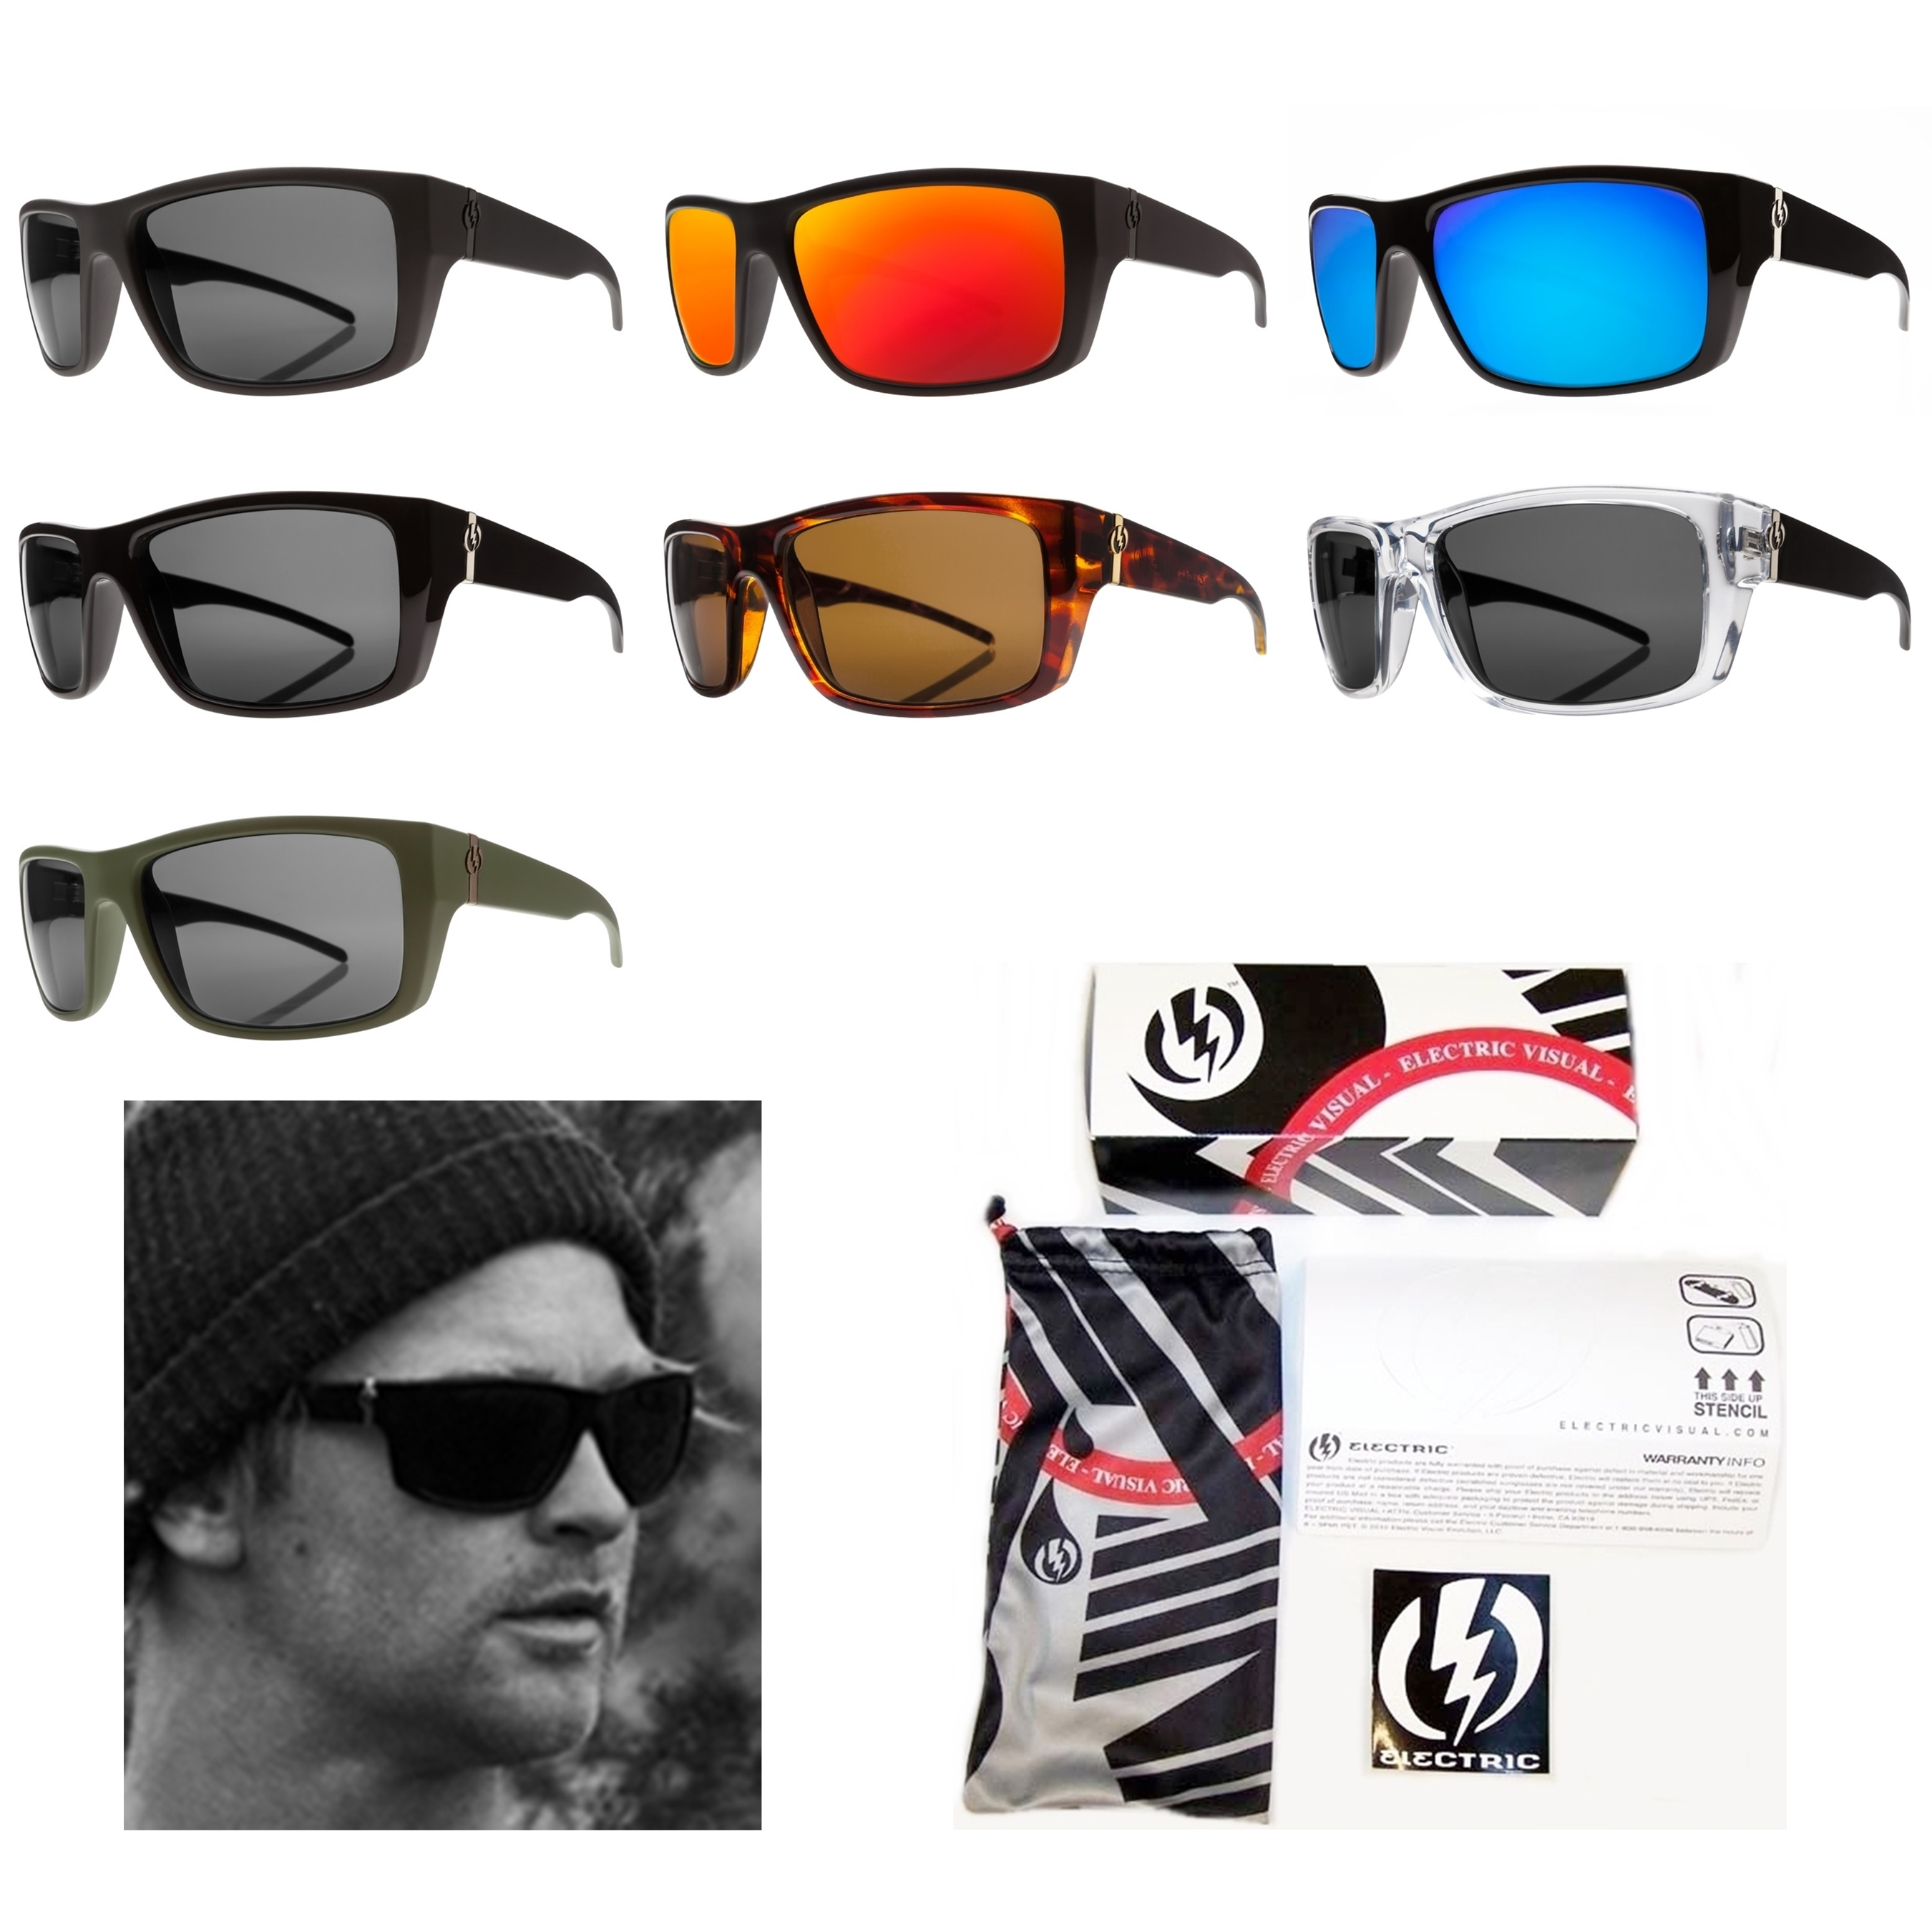 9e15f353ea3e Details about NEW Electric Visual Sixer Mens Rectangular Sunglasses Msrp 100